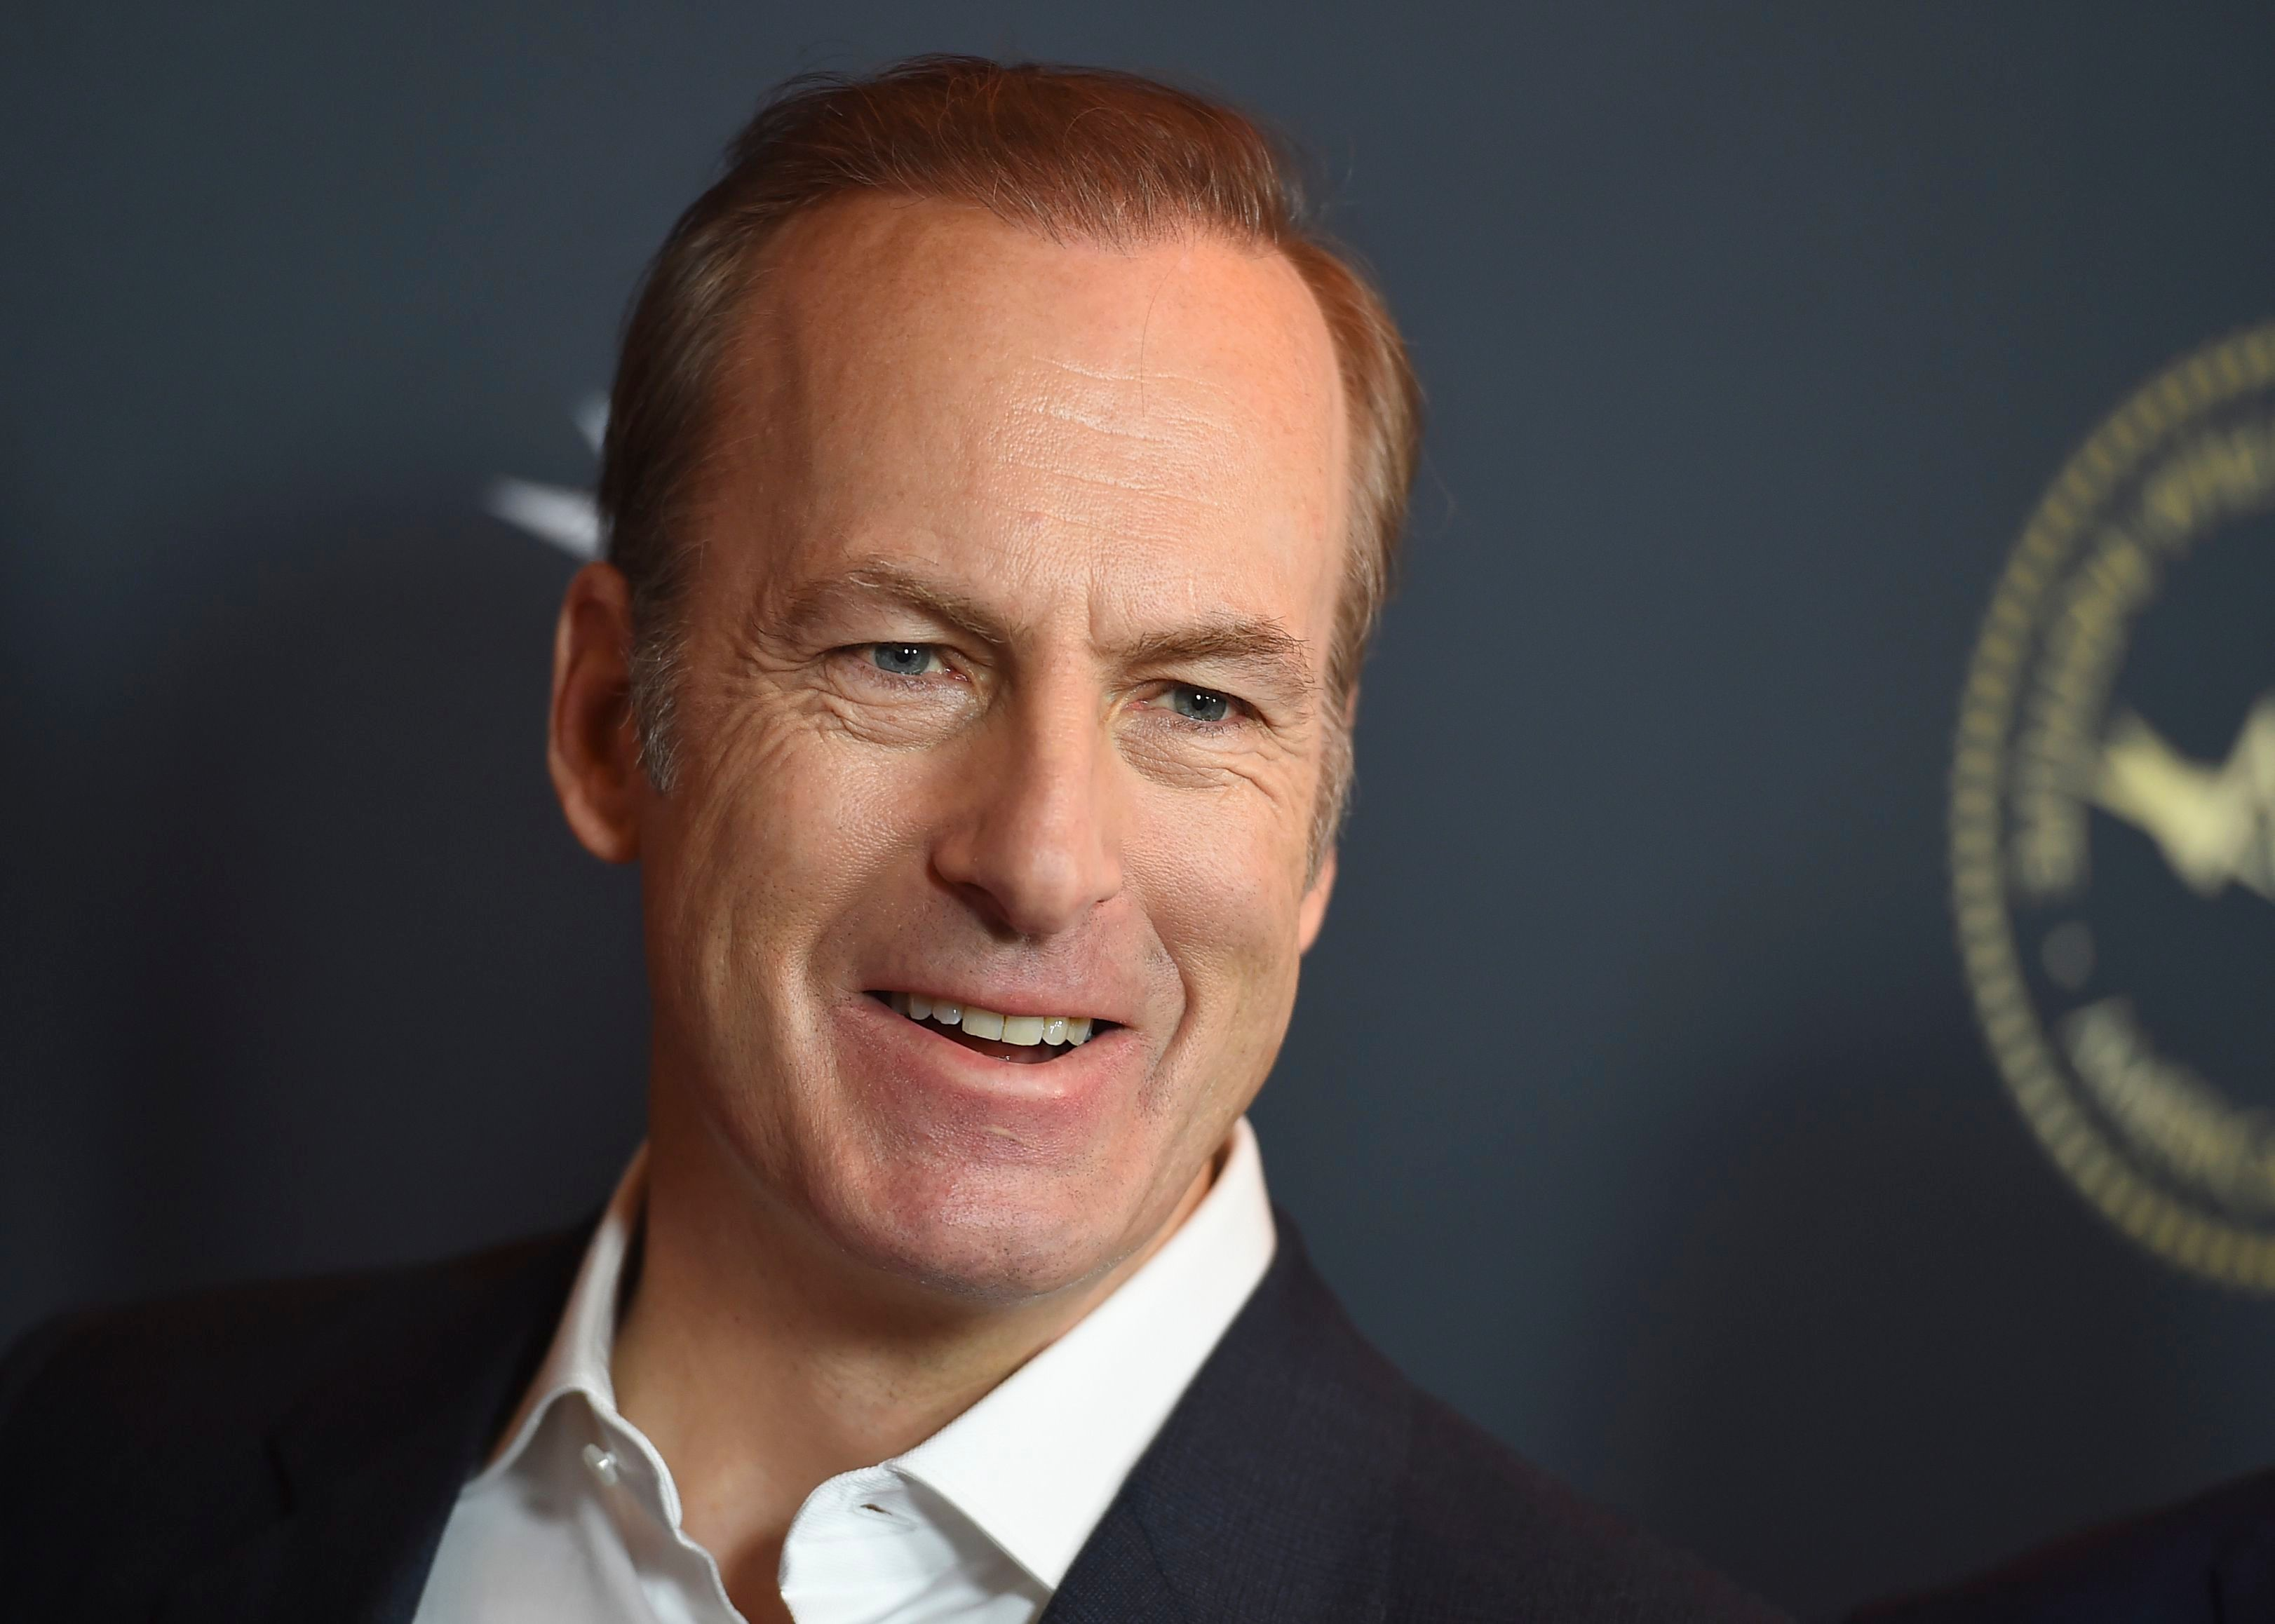 'Better Call Saul': Bob Odenkirk on Finding Compassion For His Complicated Character